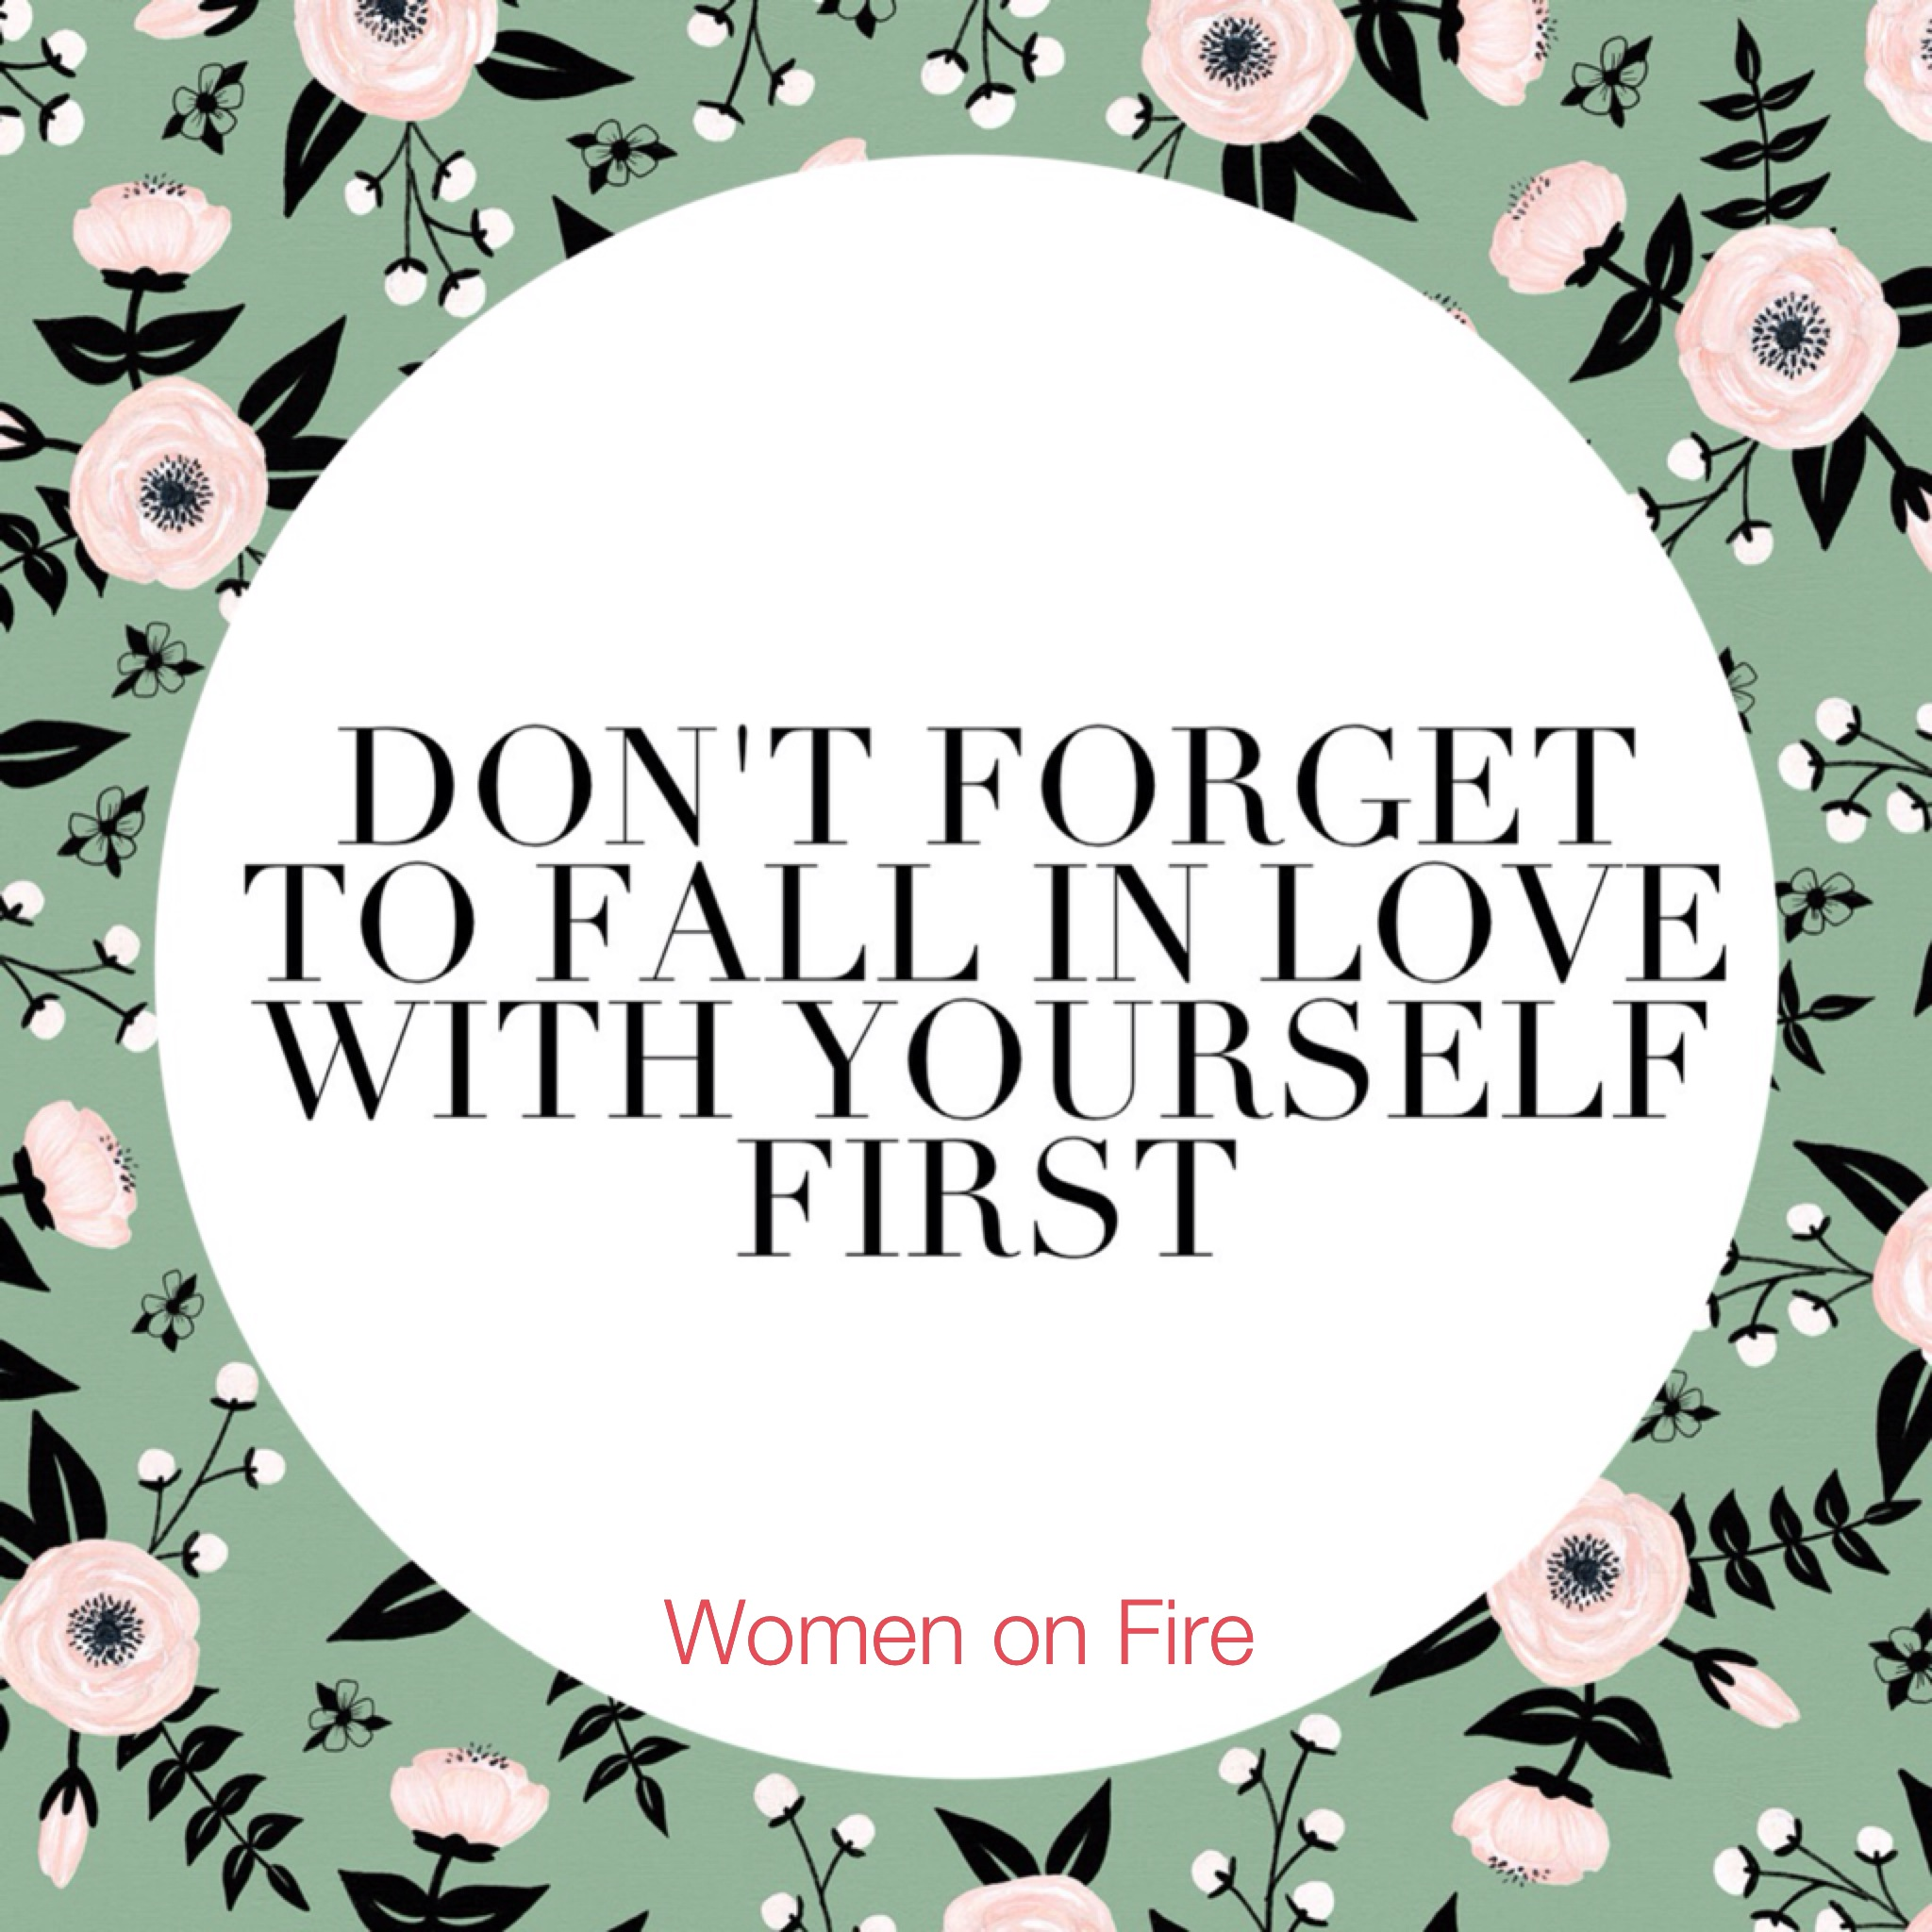 Discover 2 secrets to strengthen your intimate relationship instantly on the #womenonfire blog